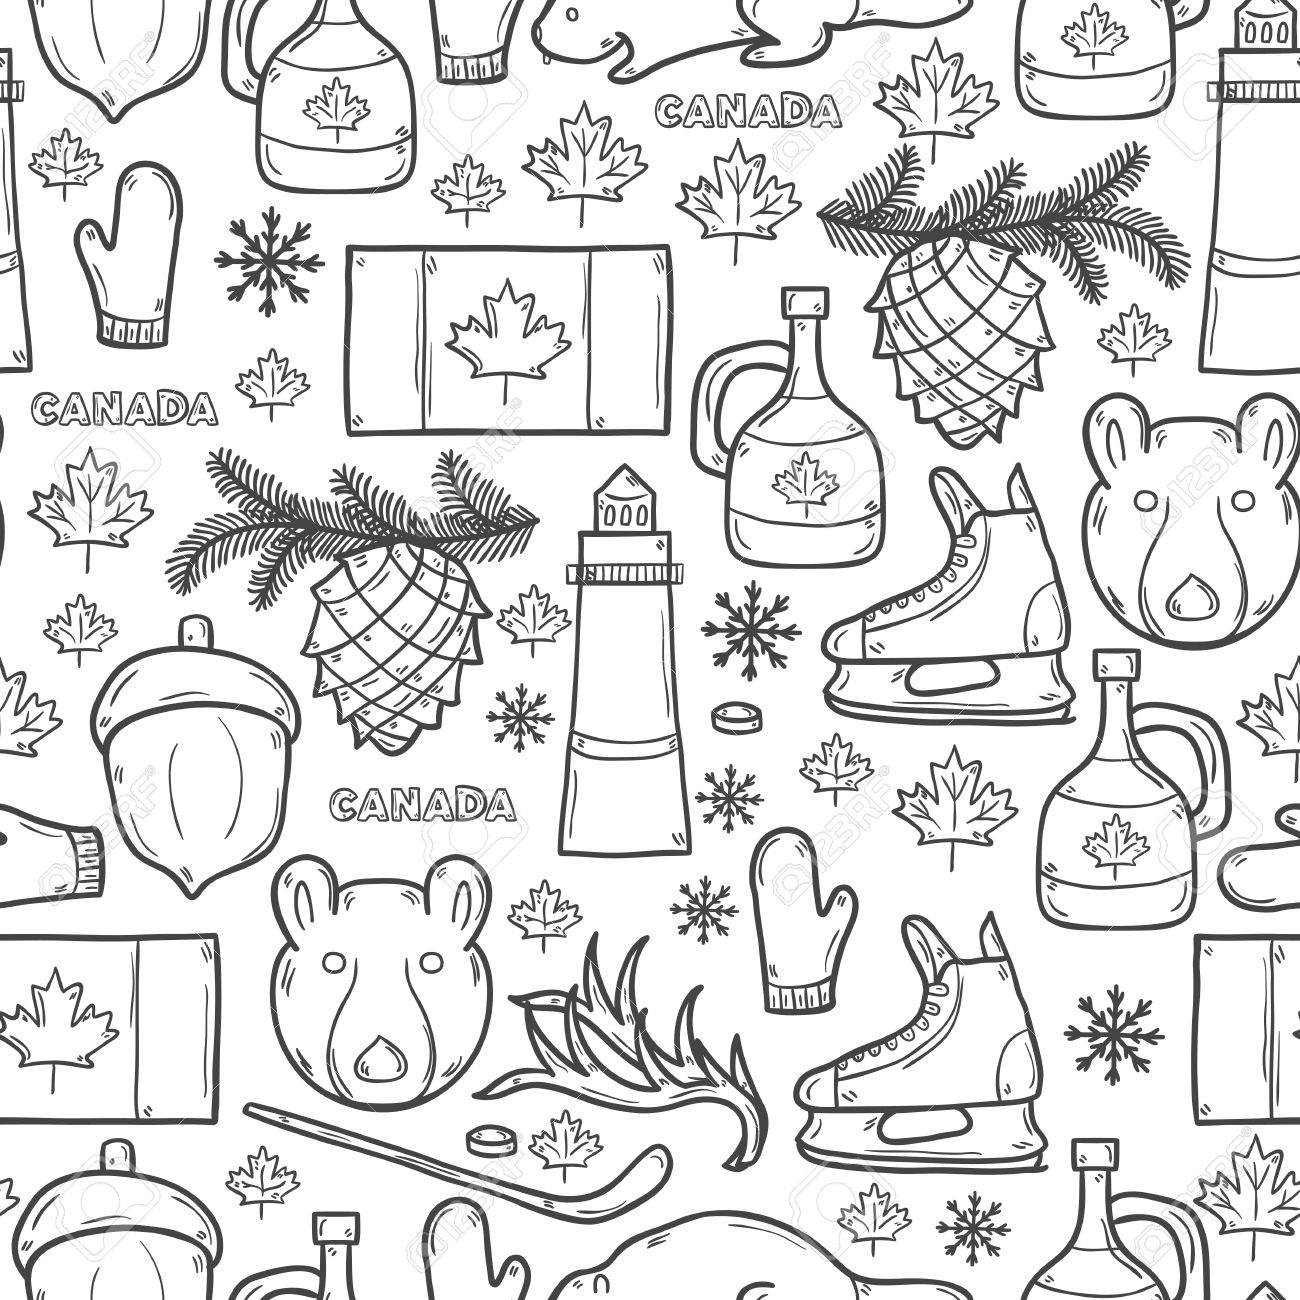 1300x1300 Seamless Background With Cartoon Hand Drawn Objects On Canada